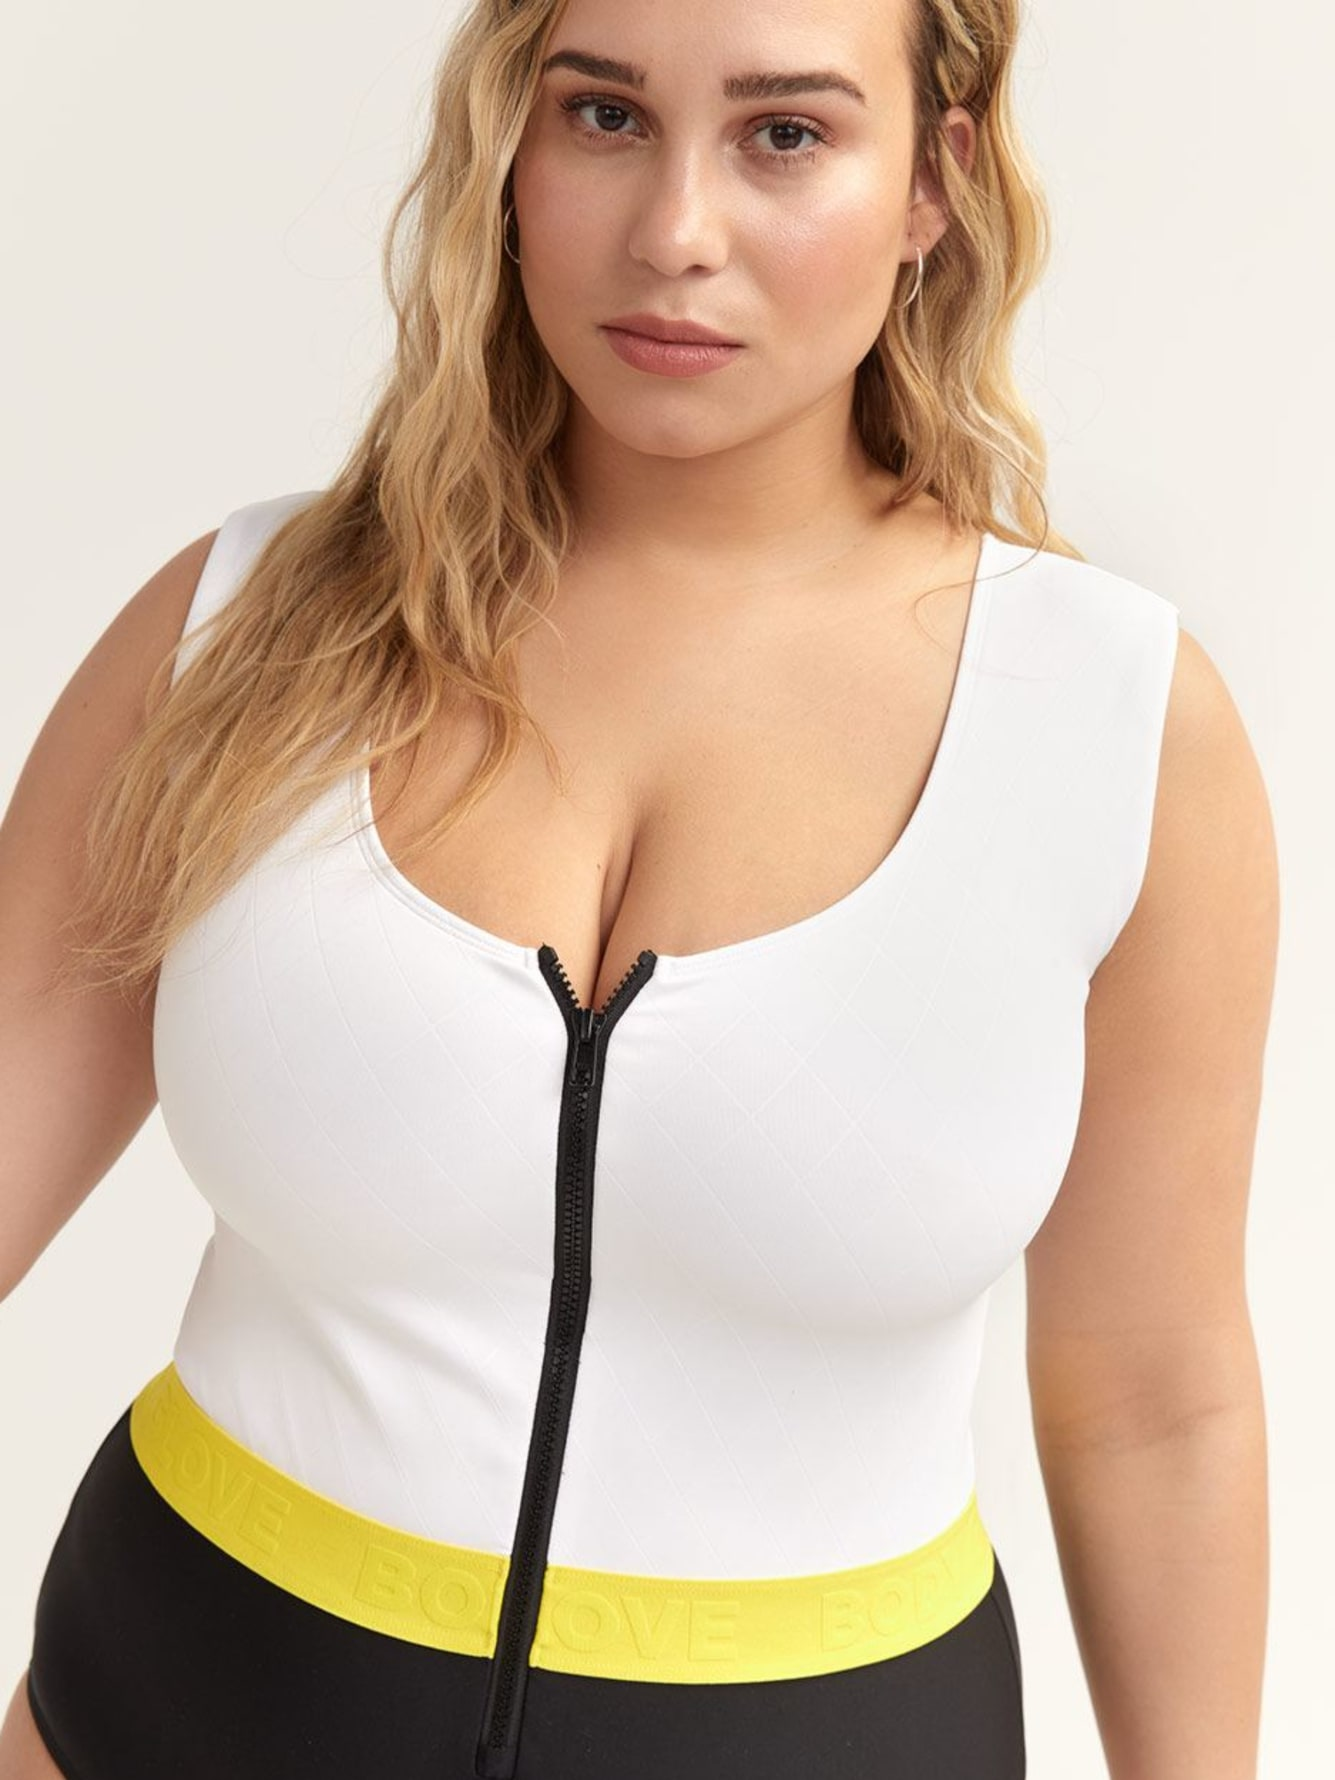 Body Glove, Bombshell Holly - One Piece Bathing Suit